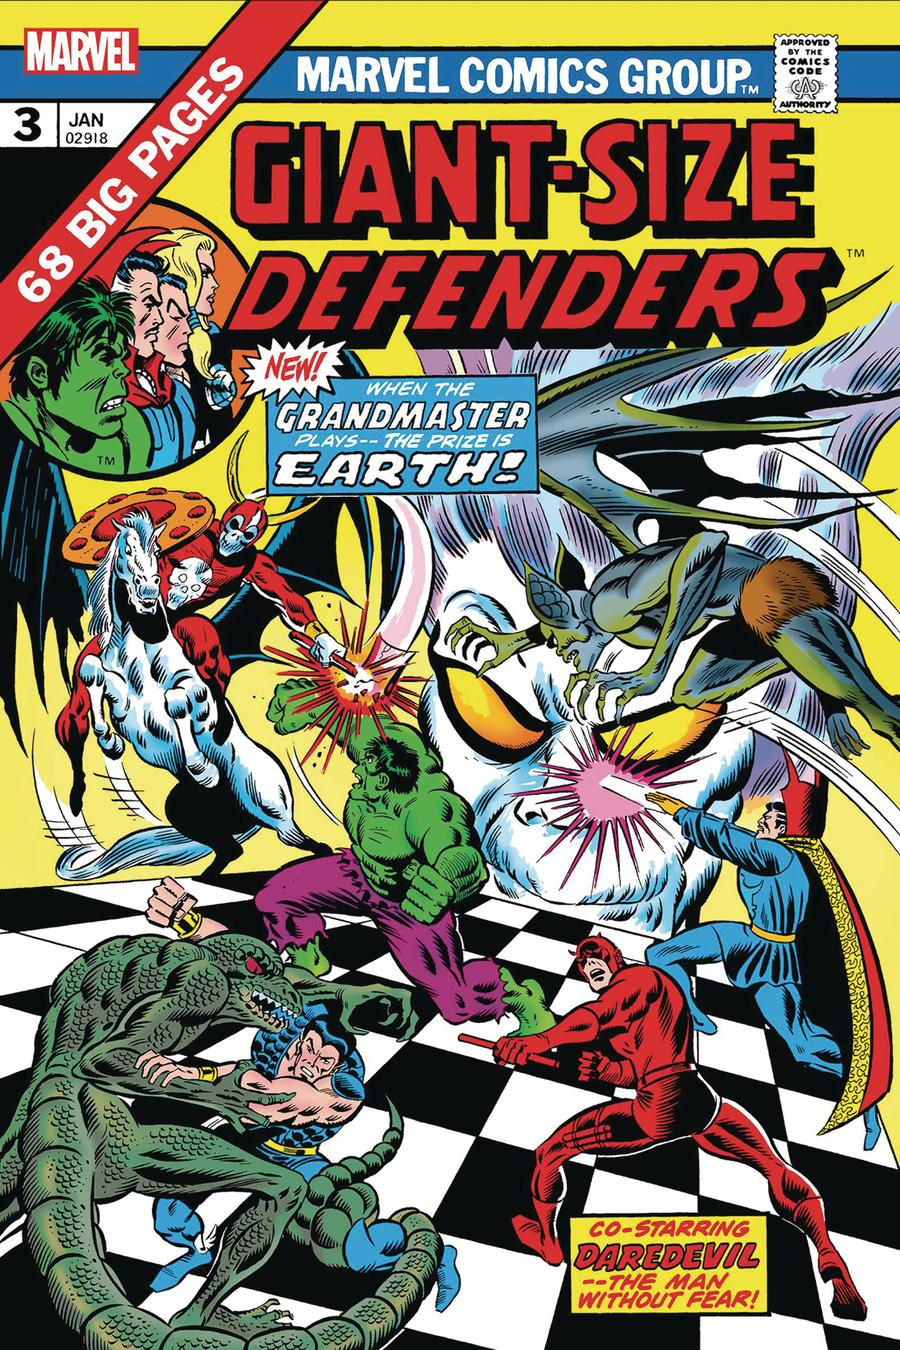 Giant-Size Defenders #3 Cover B Facsimile Edition